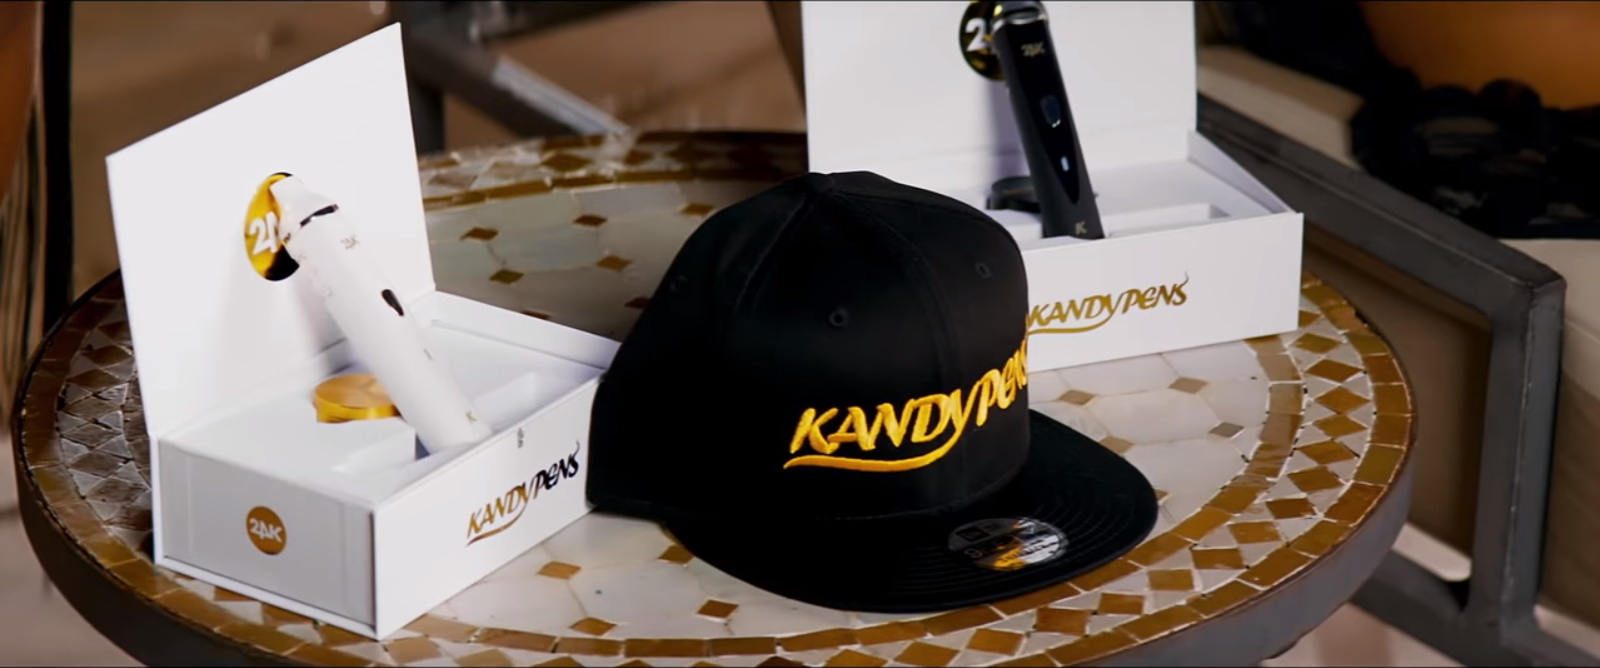 KandyPens - DJ Khaled – I'm the One - Official Music Video Product Placement